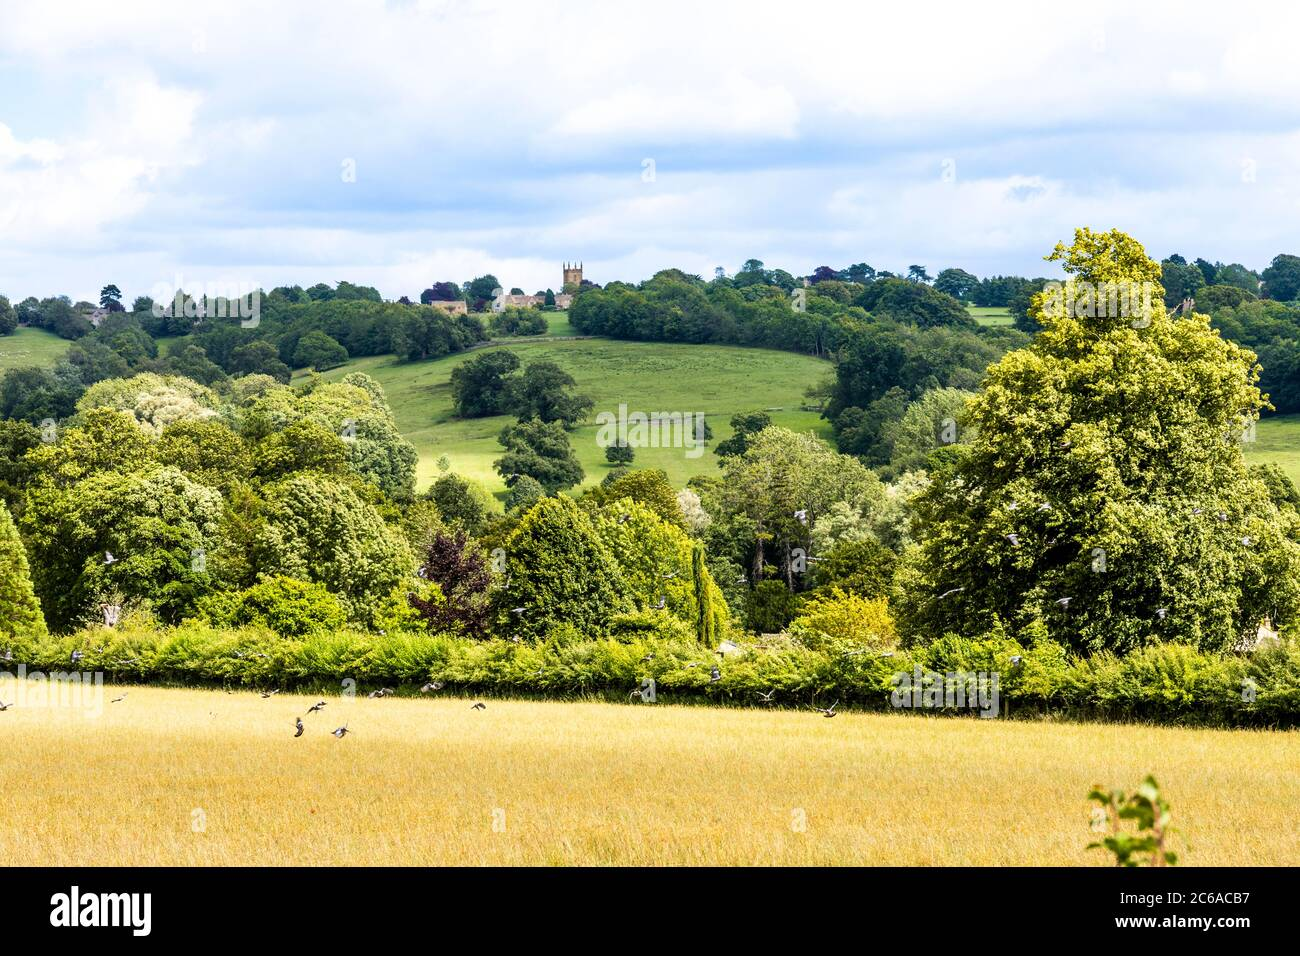 A long shot of the hilltop Cotswold town of Stow on the Wold, Gloucestershire UK Stock Photo